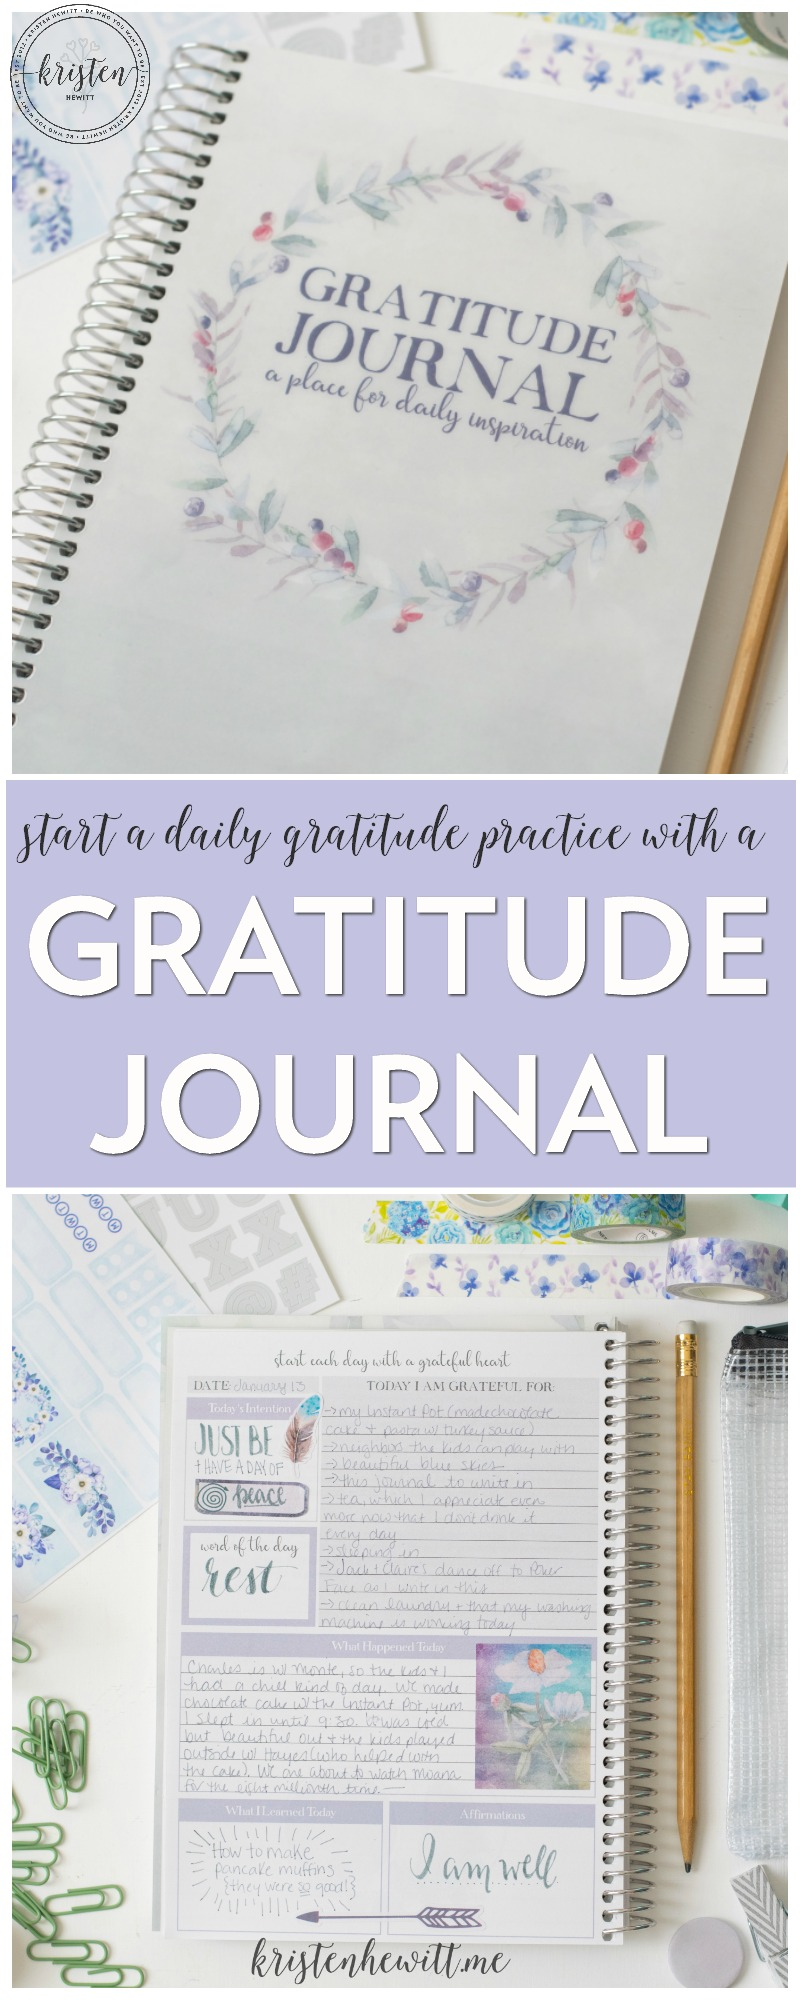 Looking for ways to live a more positive, calm, and happy life? Try using this gratitude journal to help you find the good in each day, and affirm what you really need.